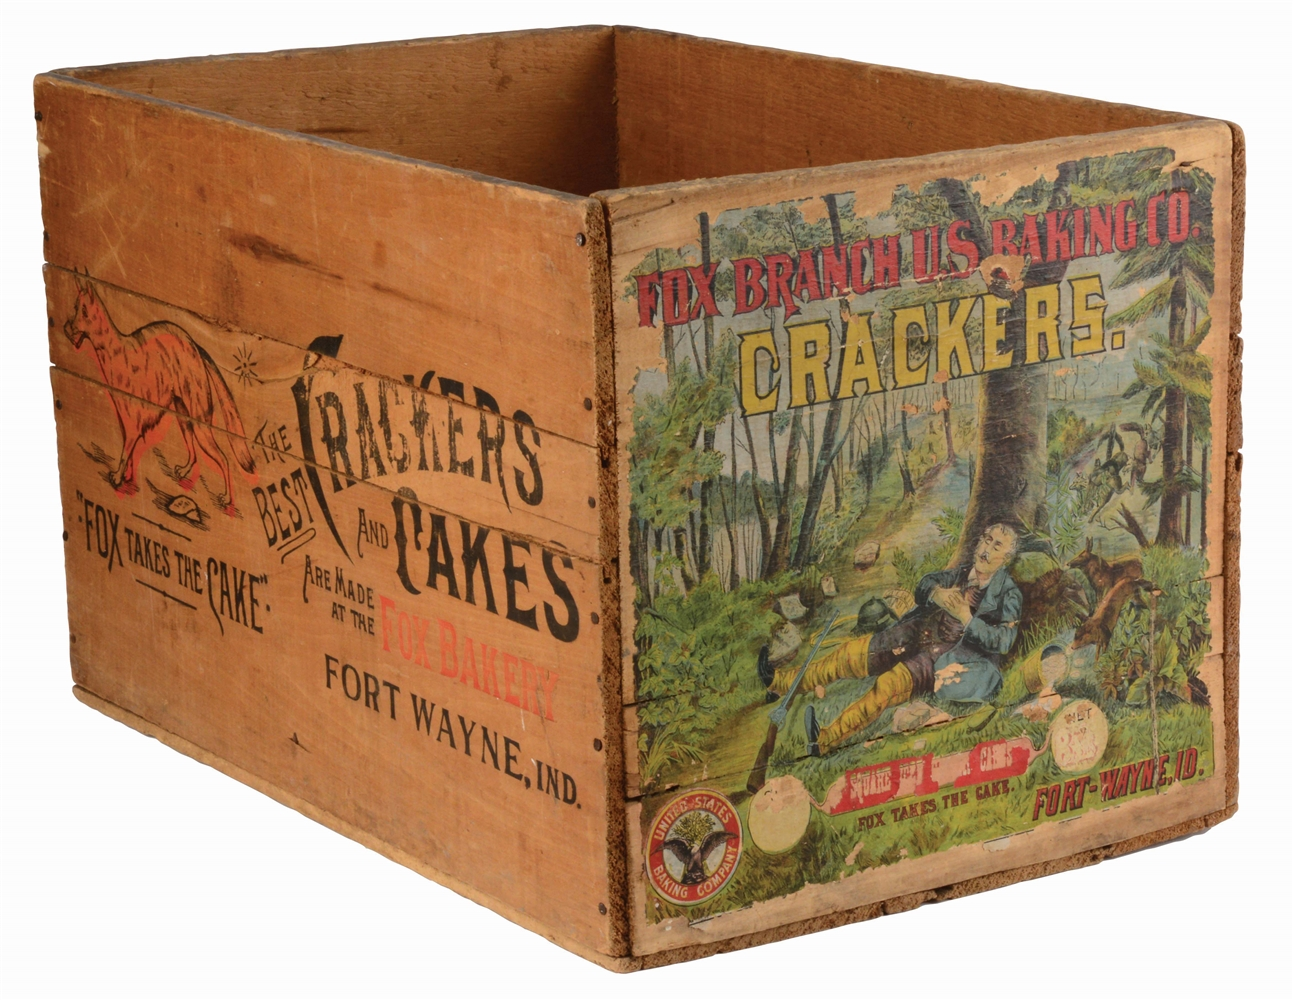 FOX BAKERY CRACKERS AND CAKES ADVERTISING WOODEN CRATE.